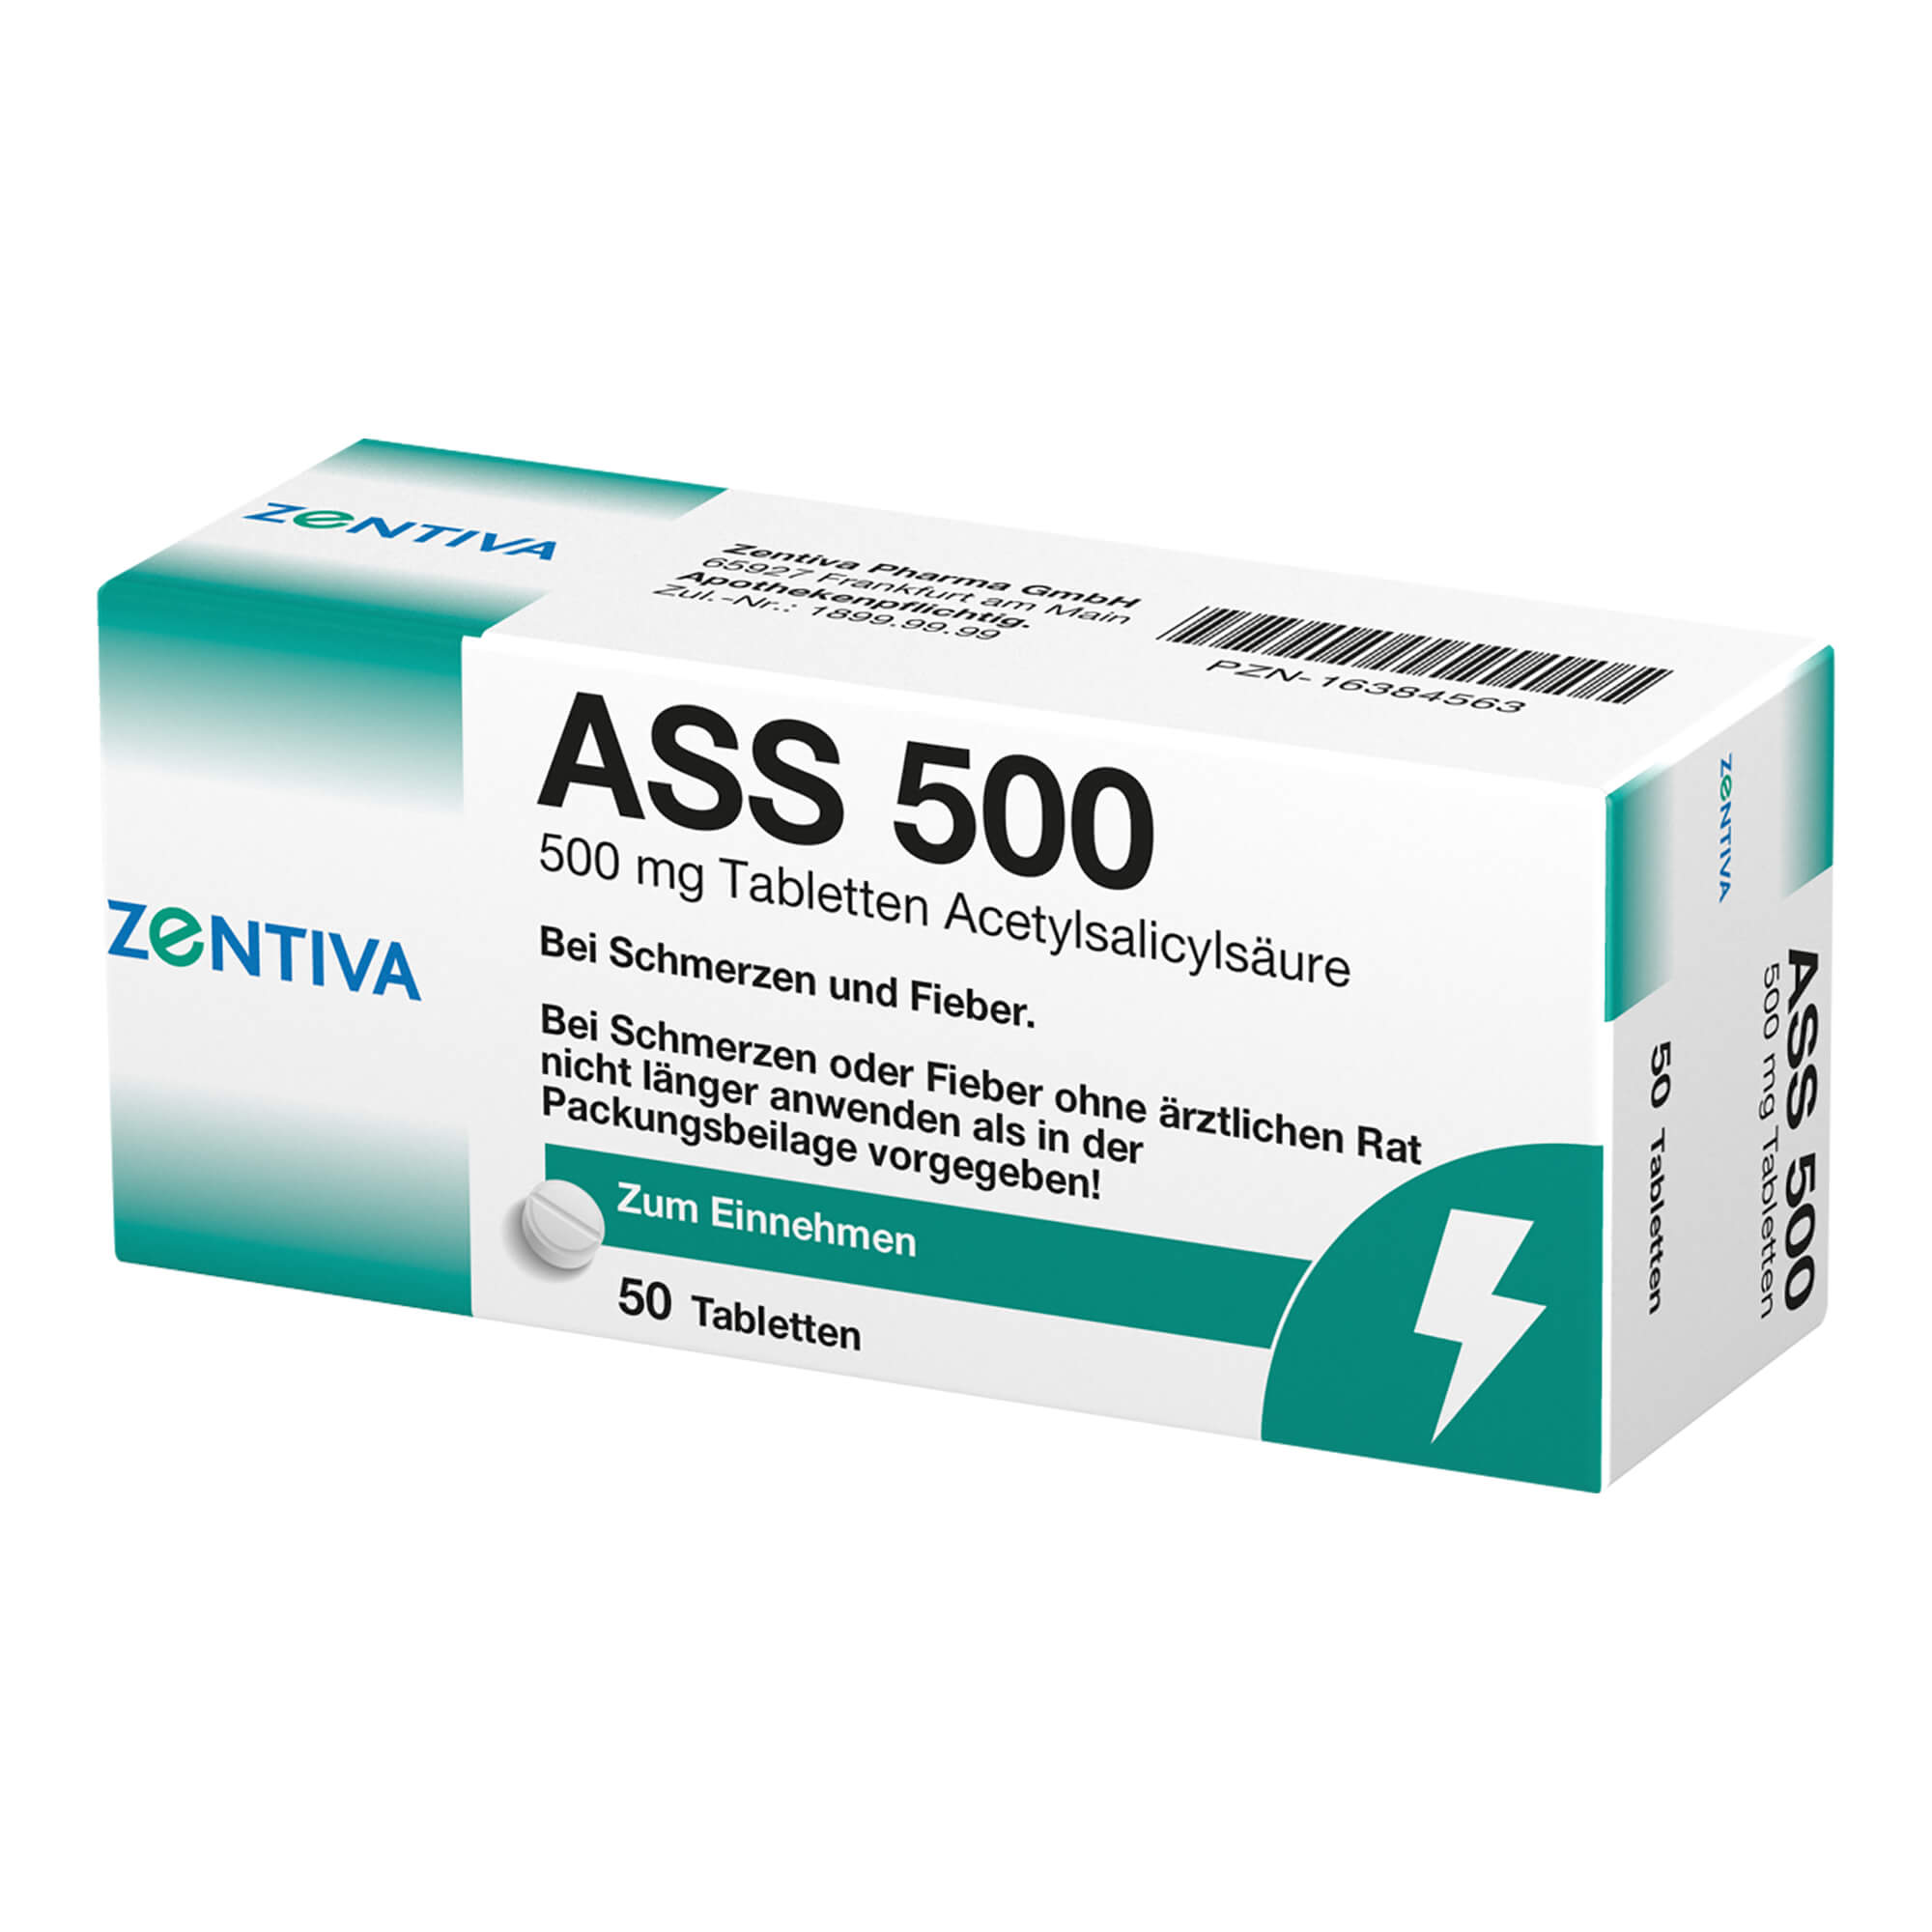 ASS 500 Acetylsalicylsäure 500 mg Tabletten